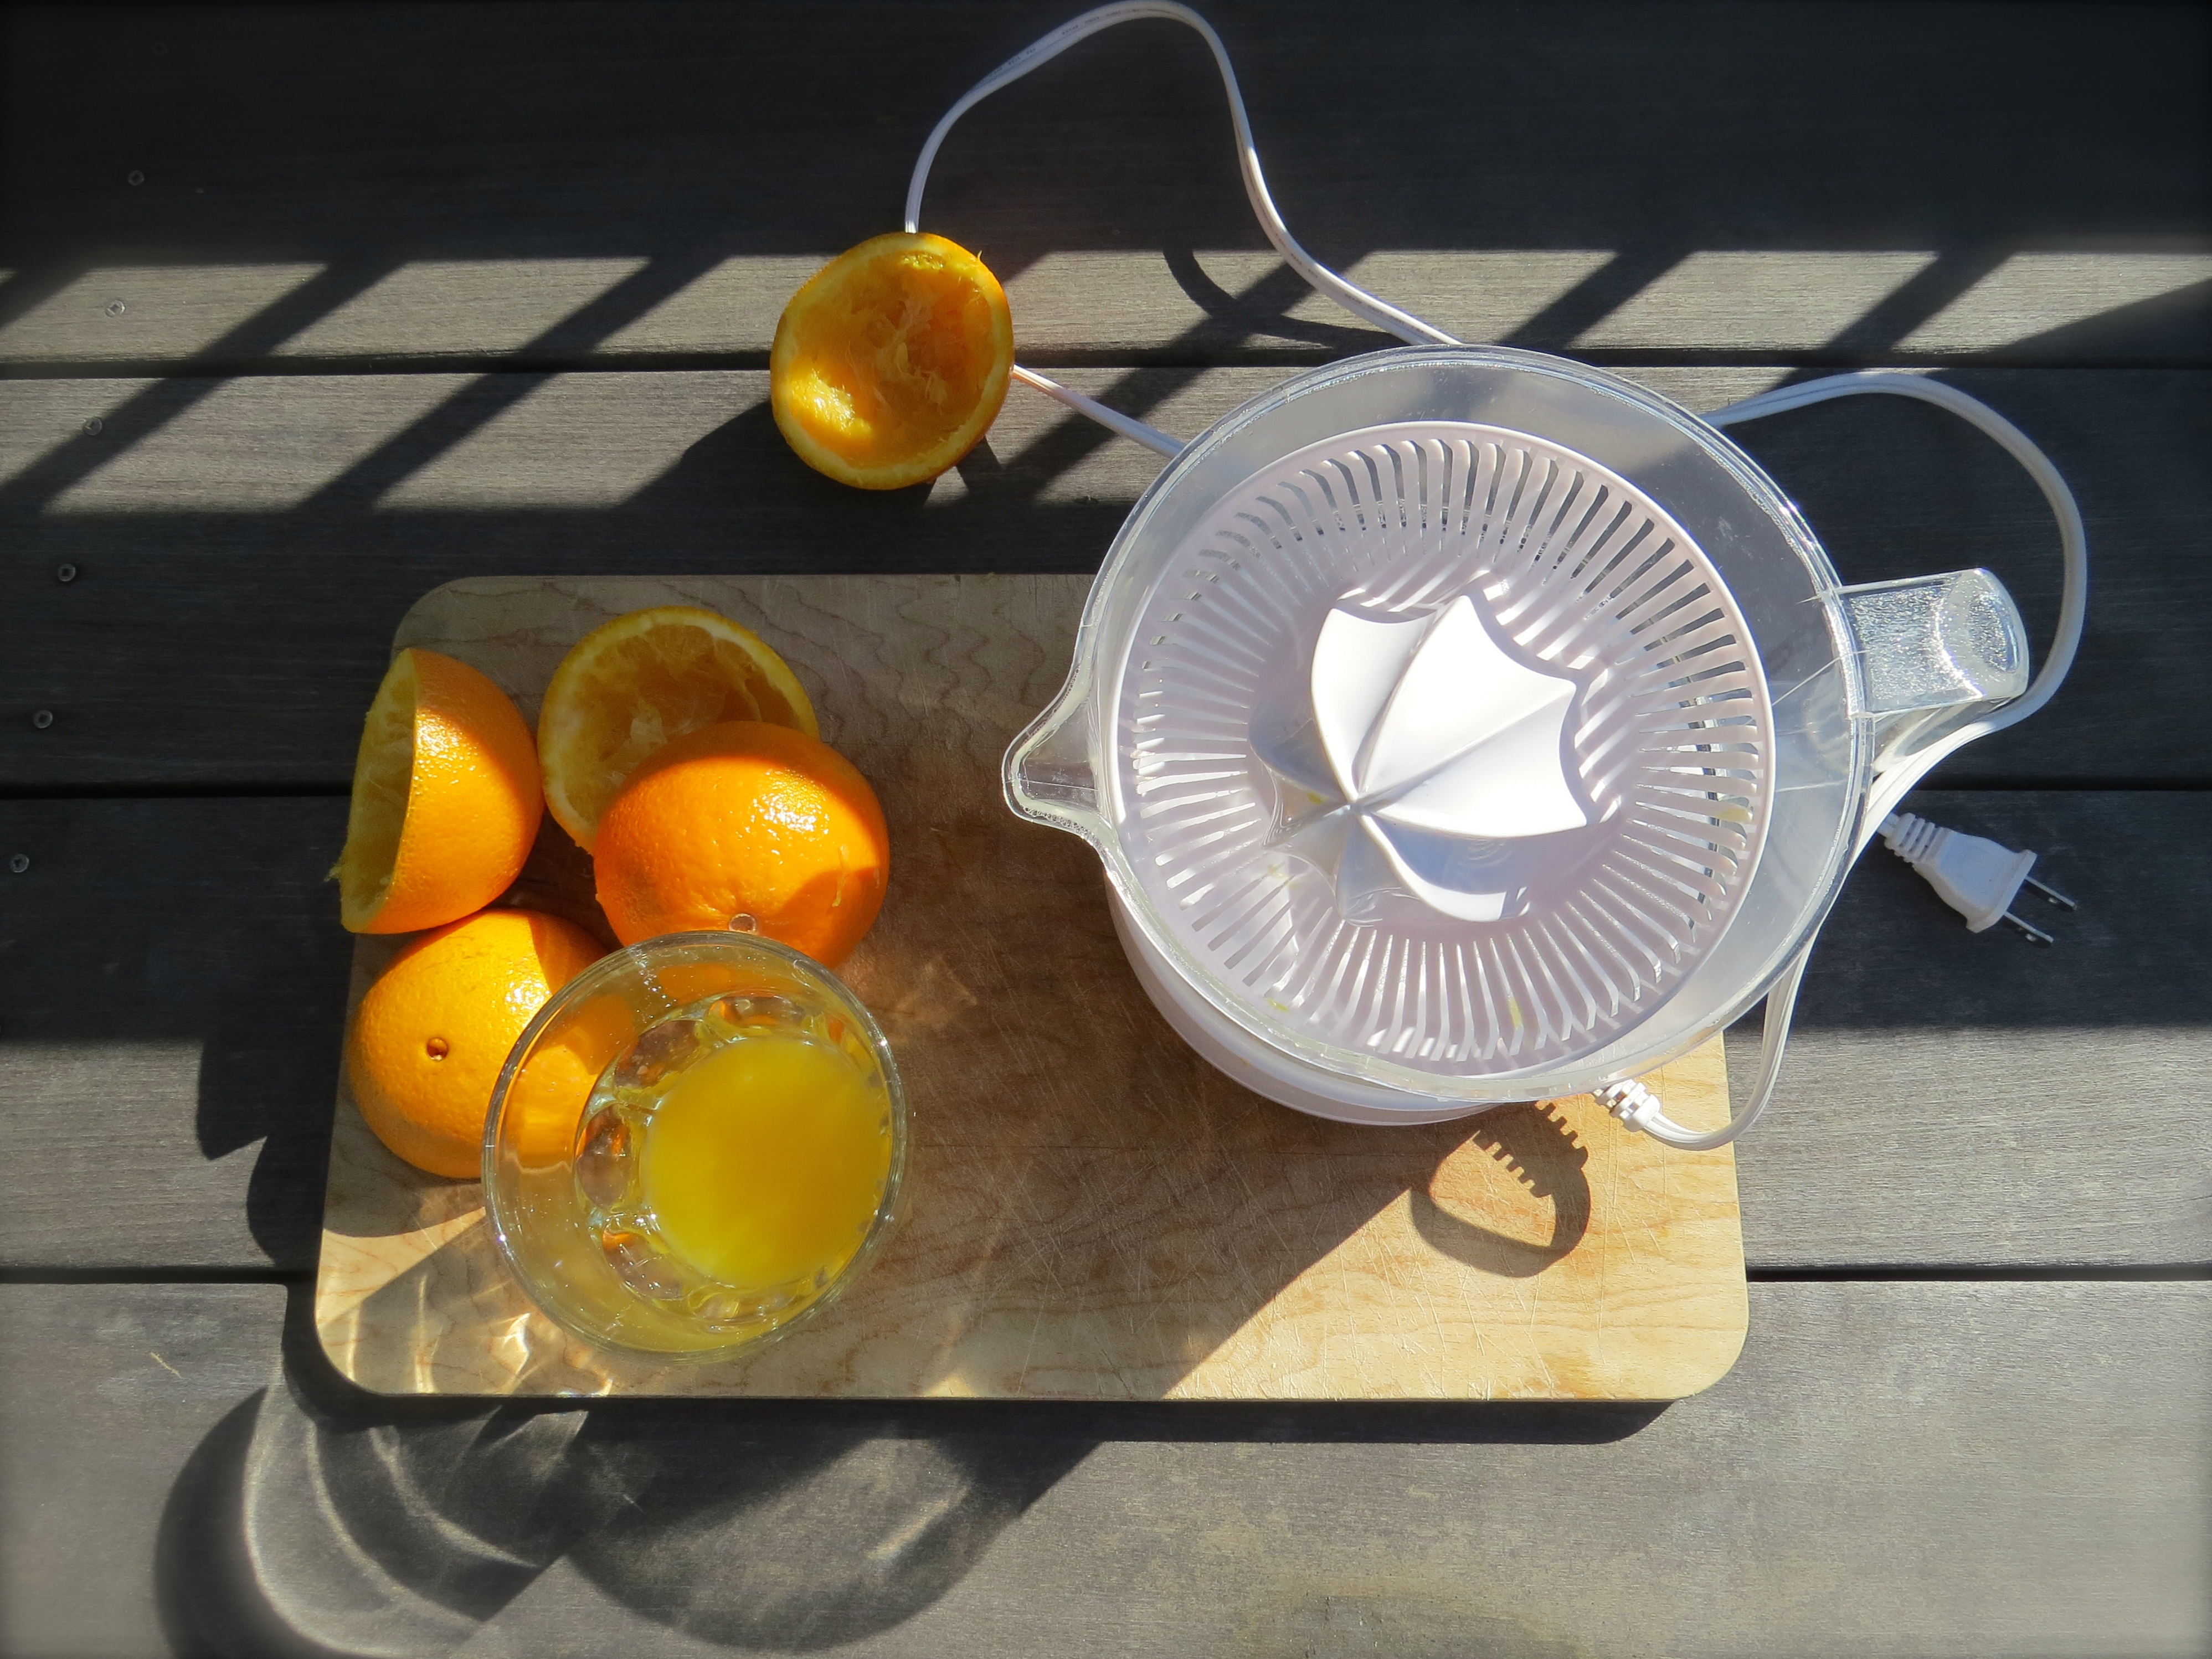 Fresh squeezed orange juice is a morning treat.